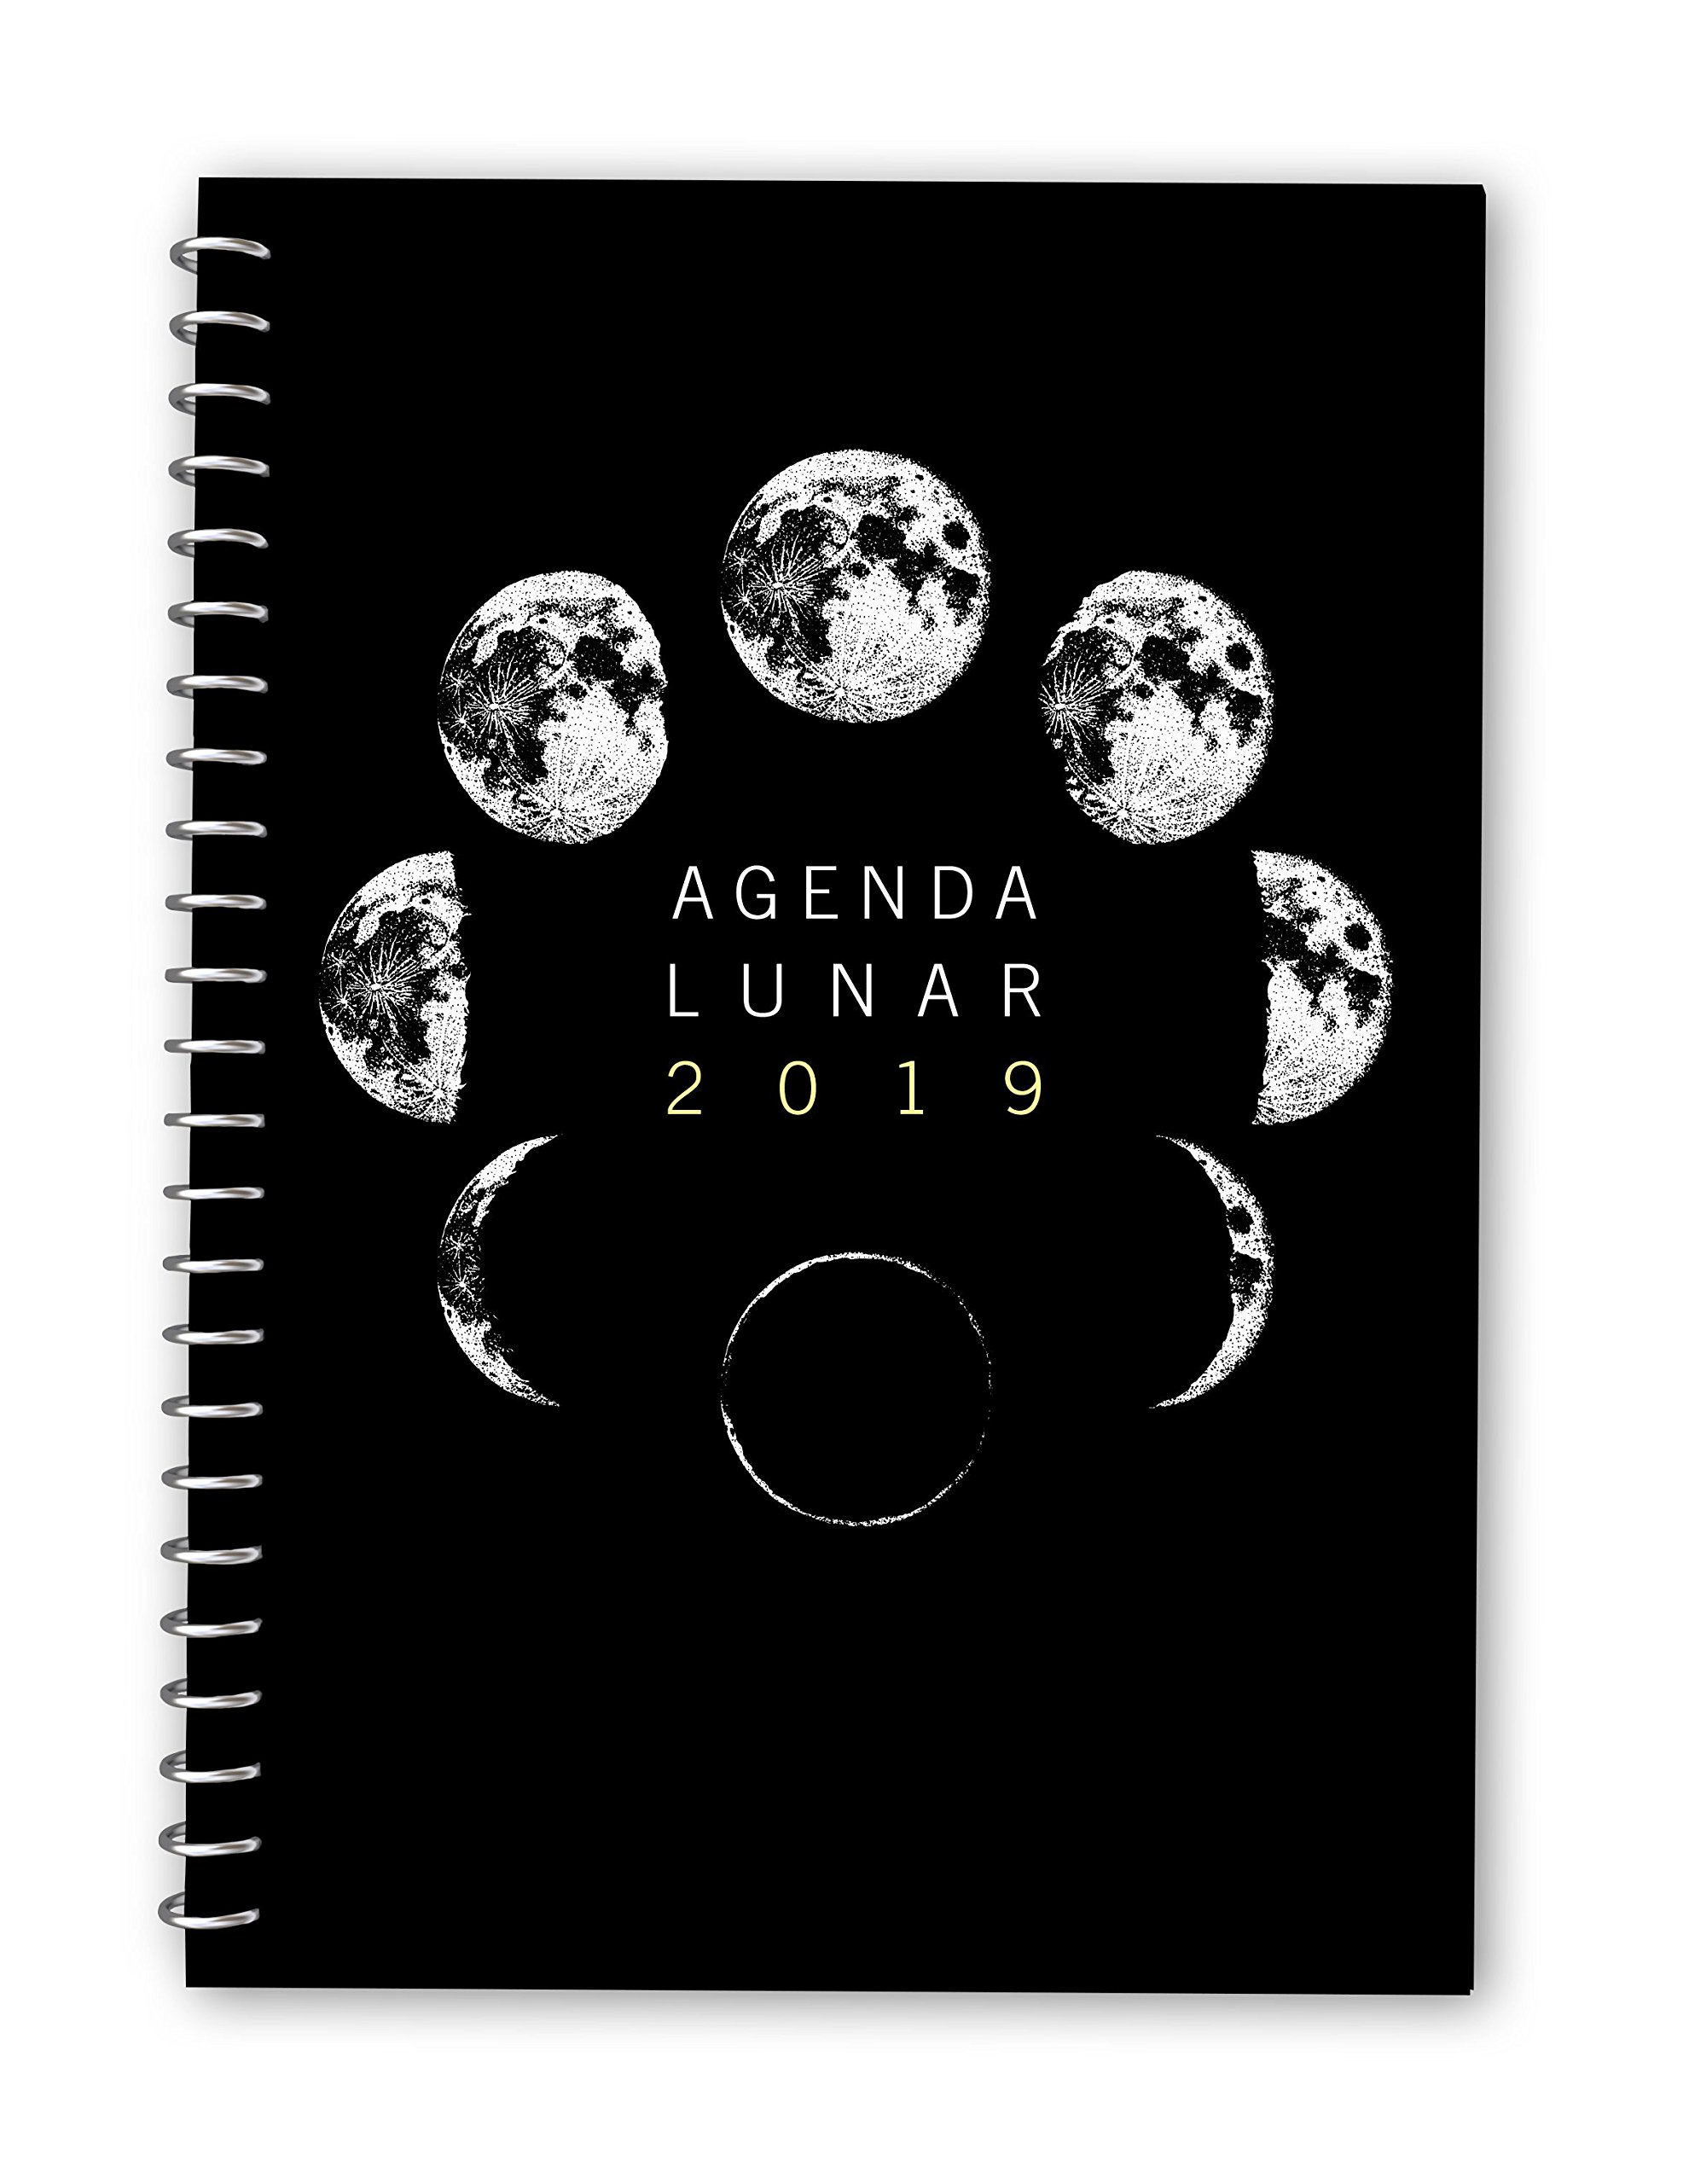 Agenda lunar 2019: 9788417166144: Amazon.com: Books